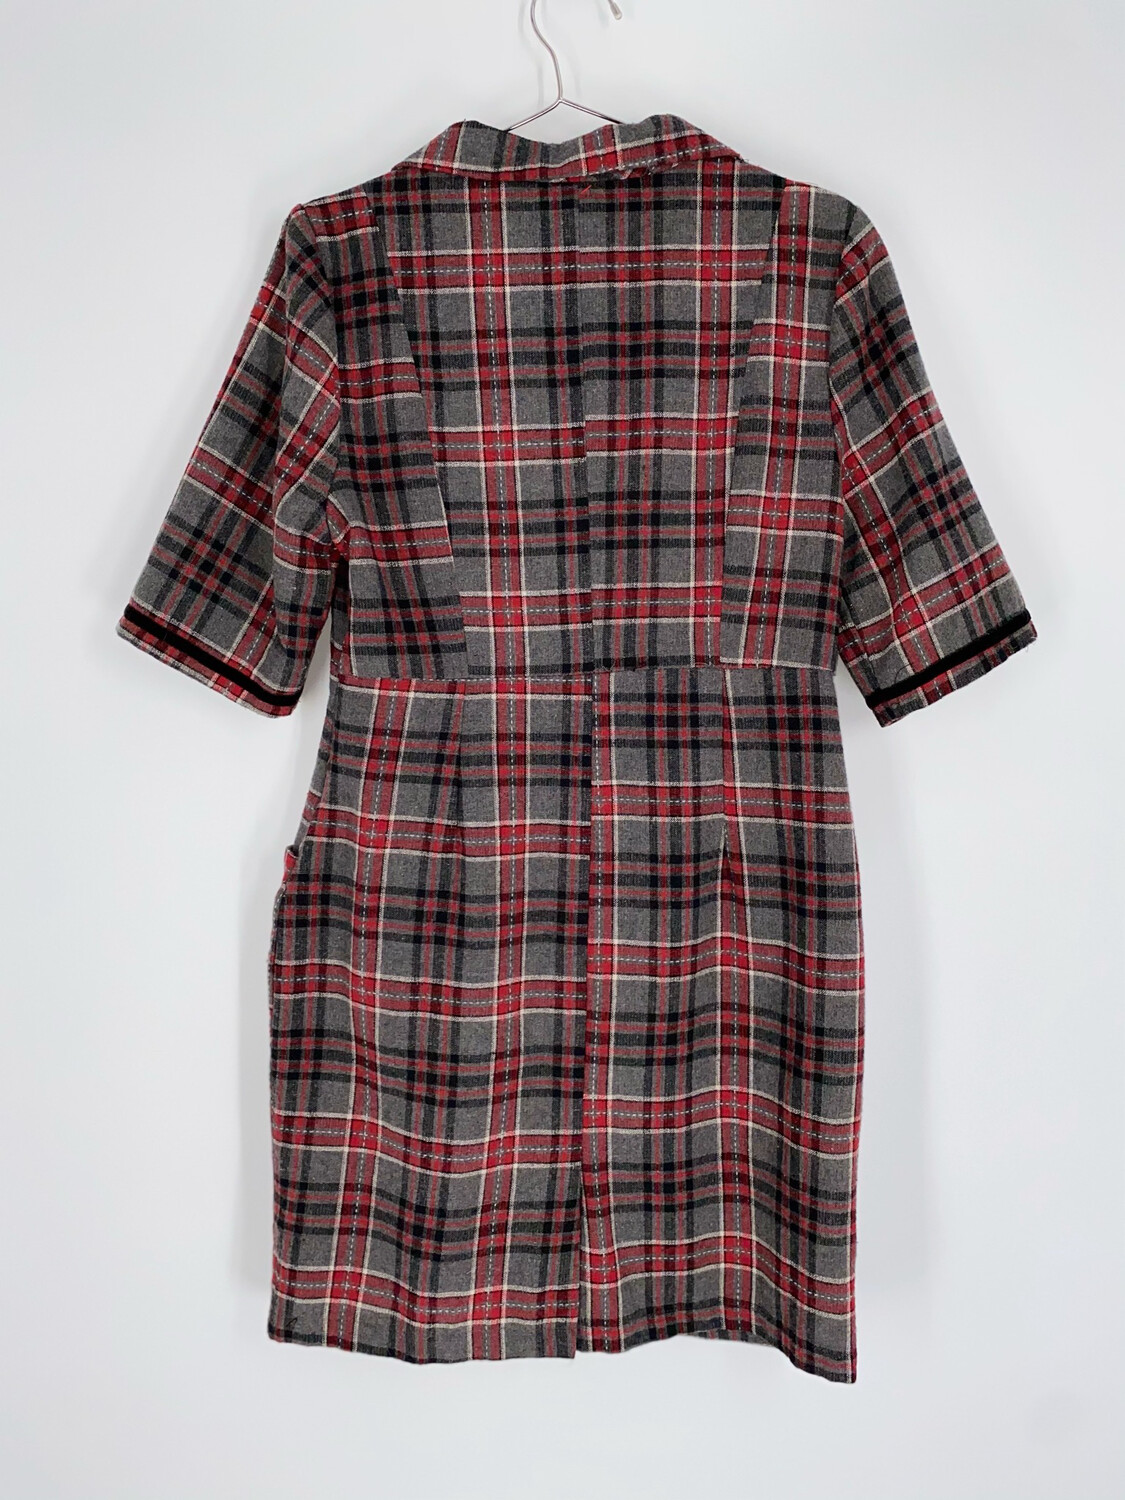 Retro Grey And Red Plaid Dress Size S